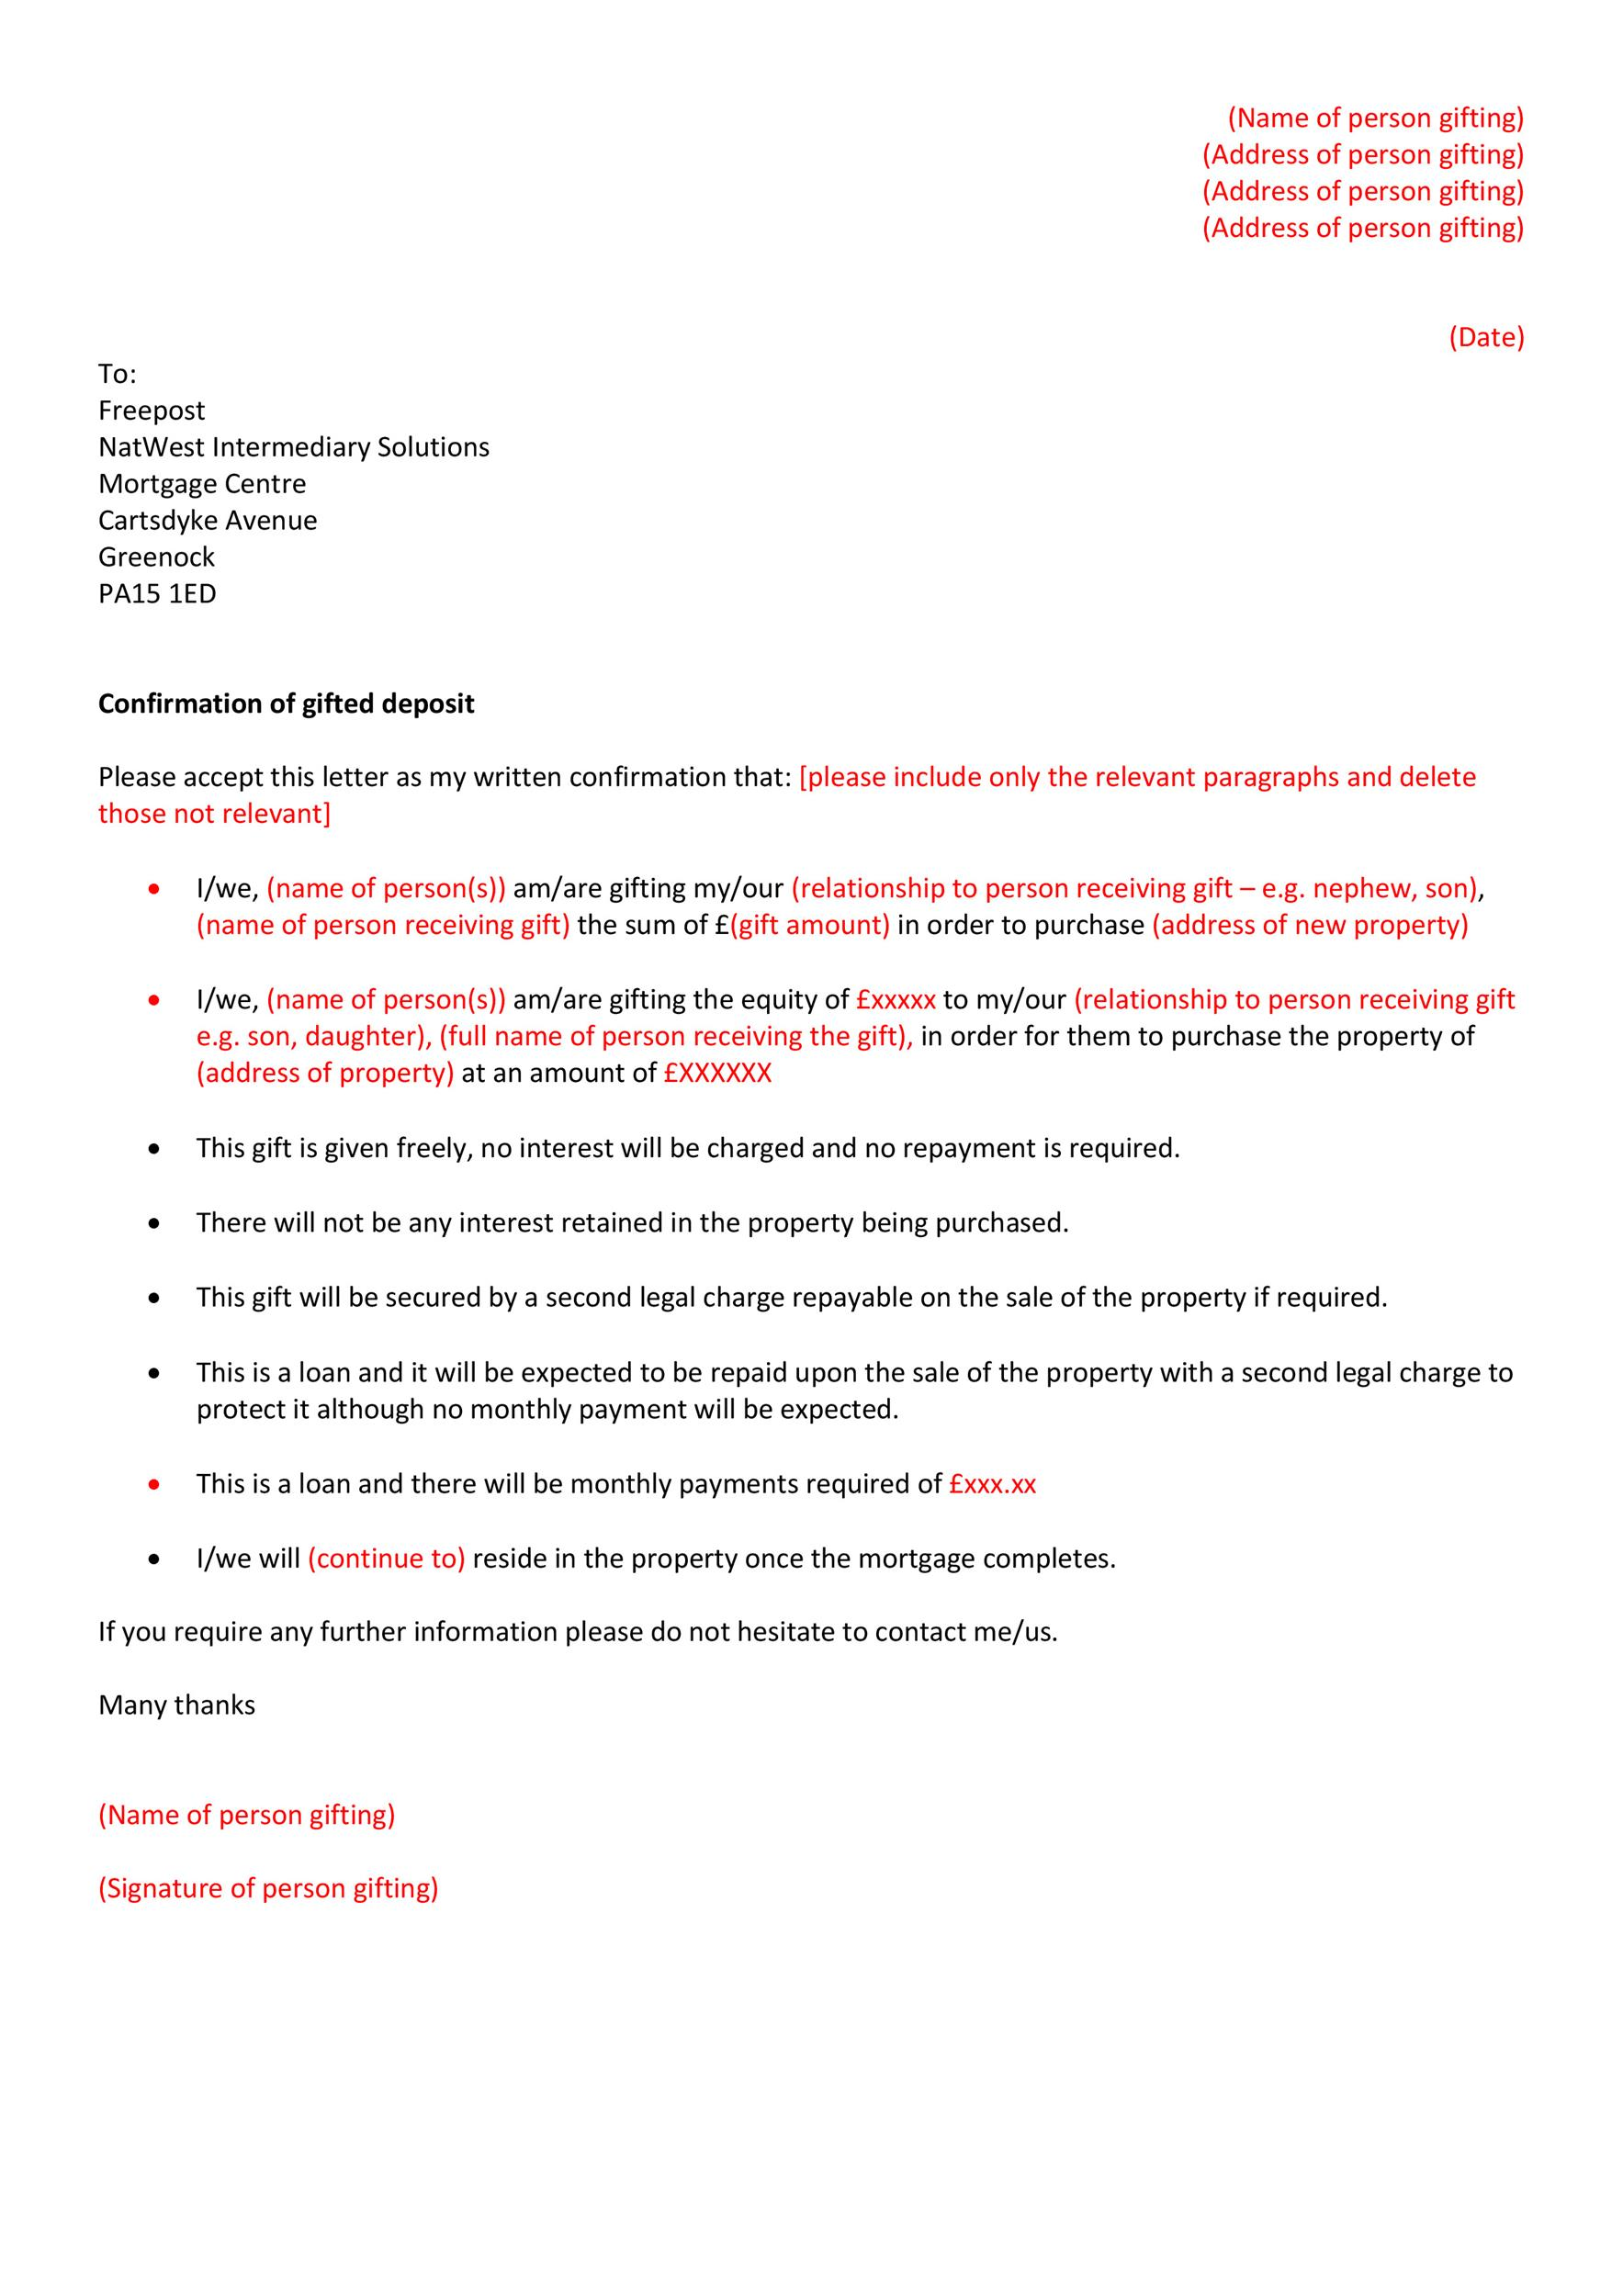 Free gift letter template 05